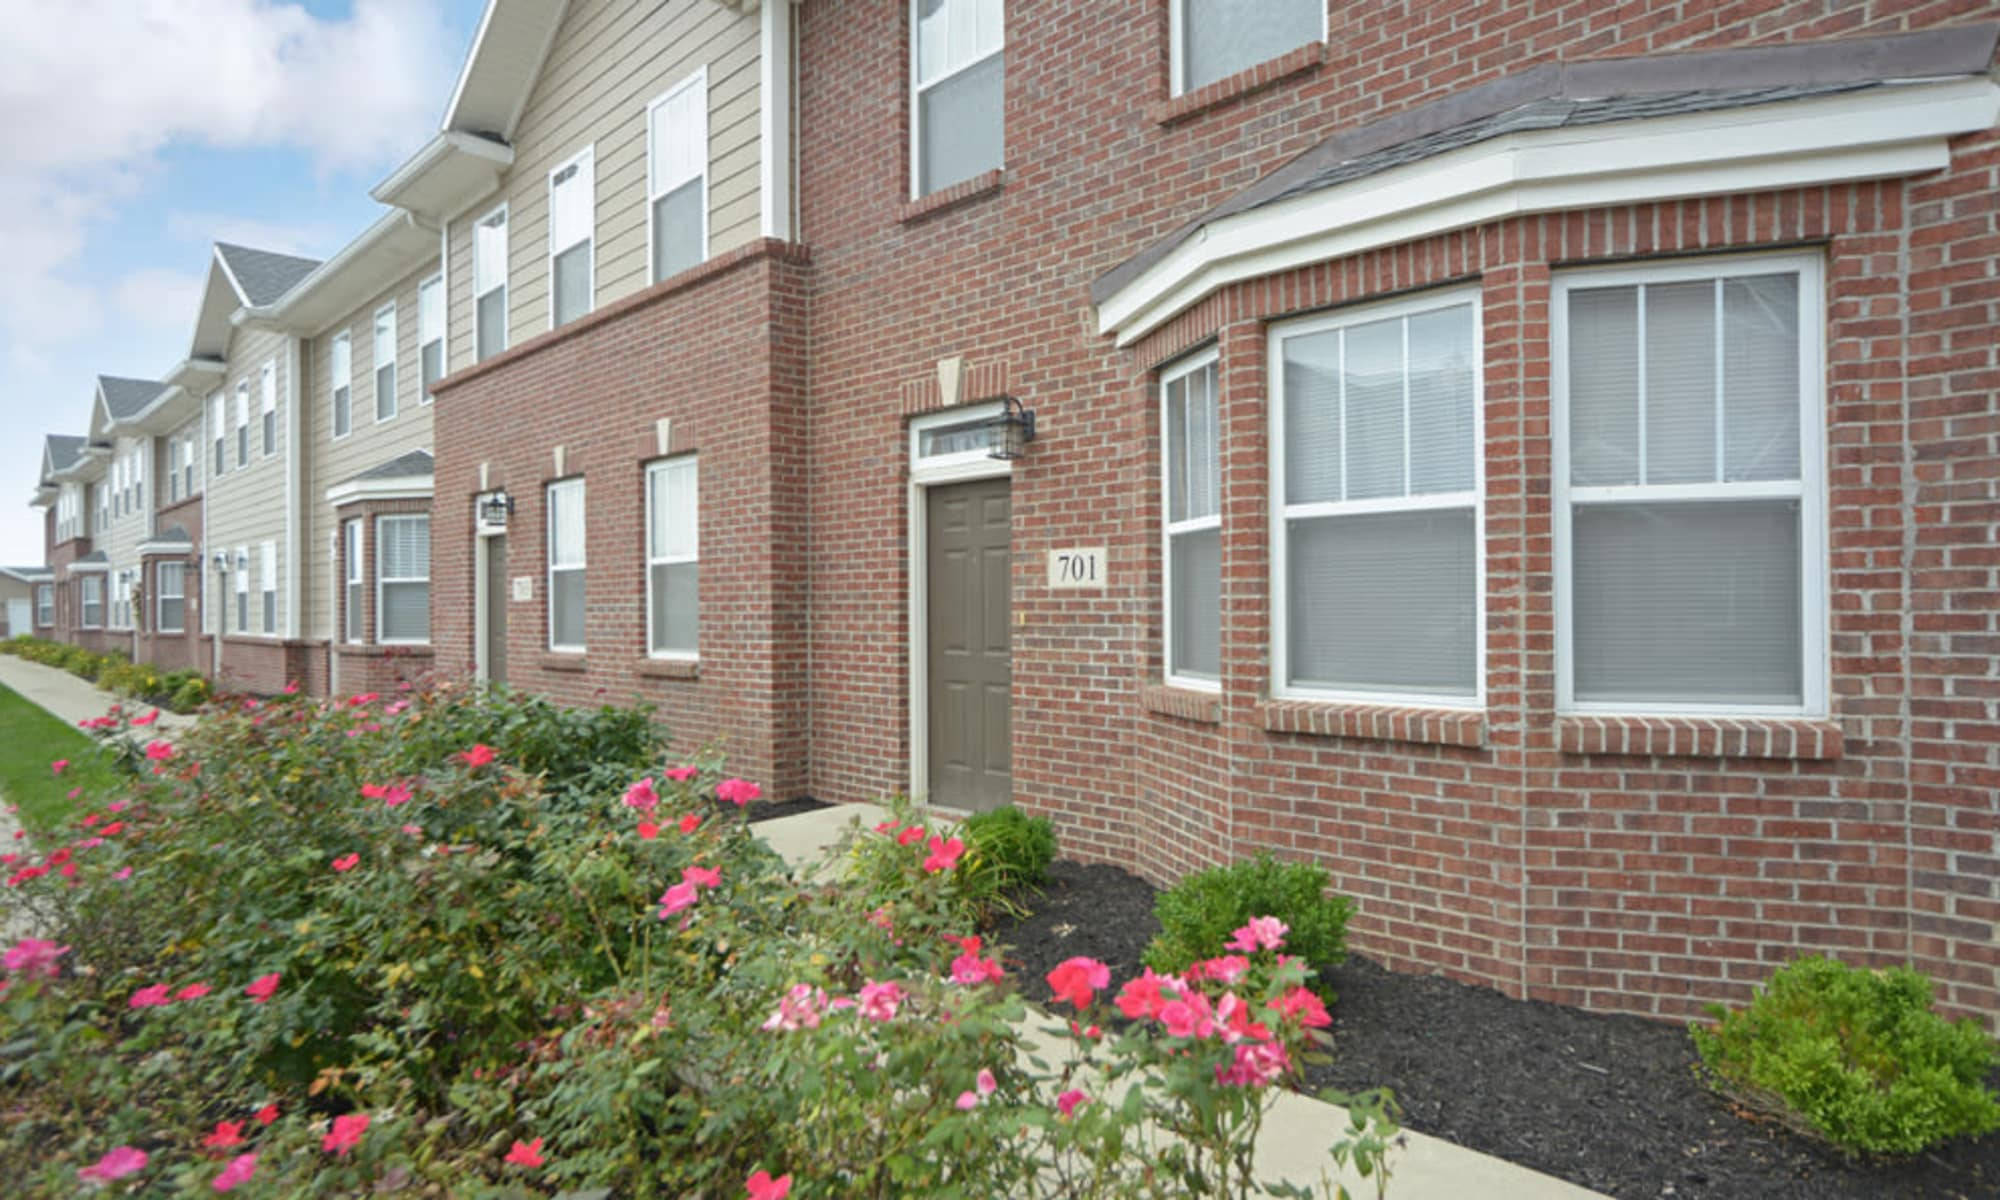 Apartments in Evansville, Indiana